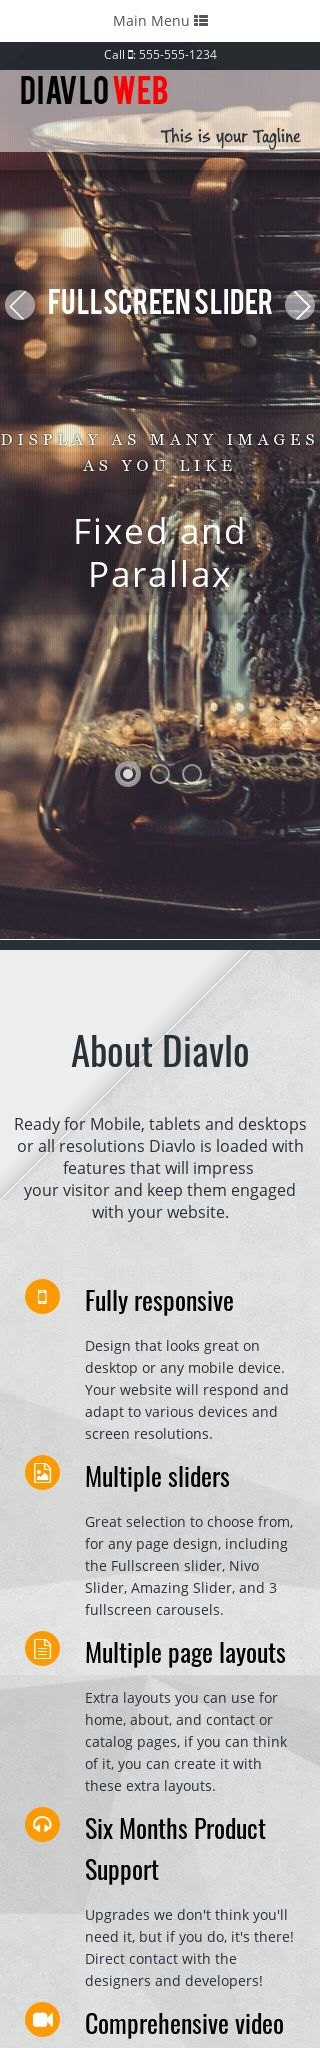 Mobile: Cafe Web Template